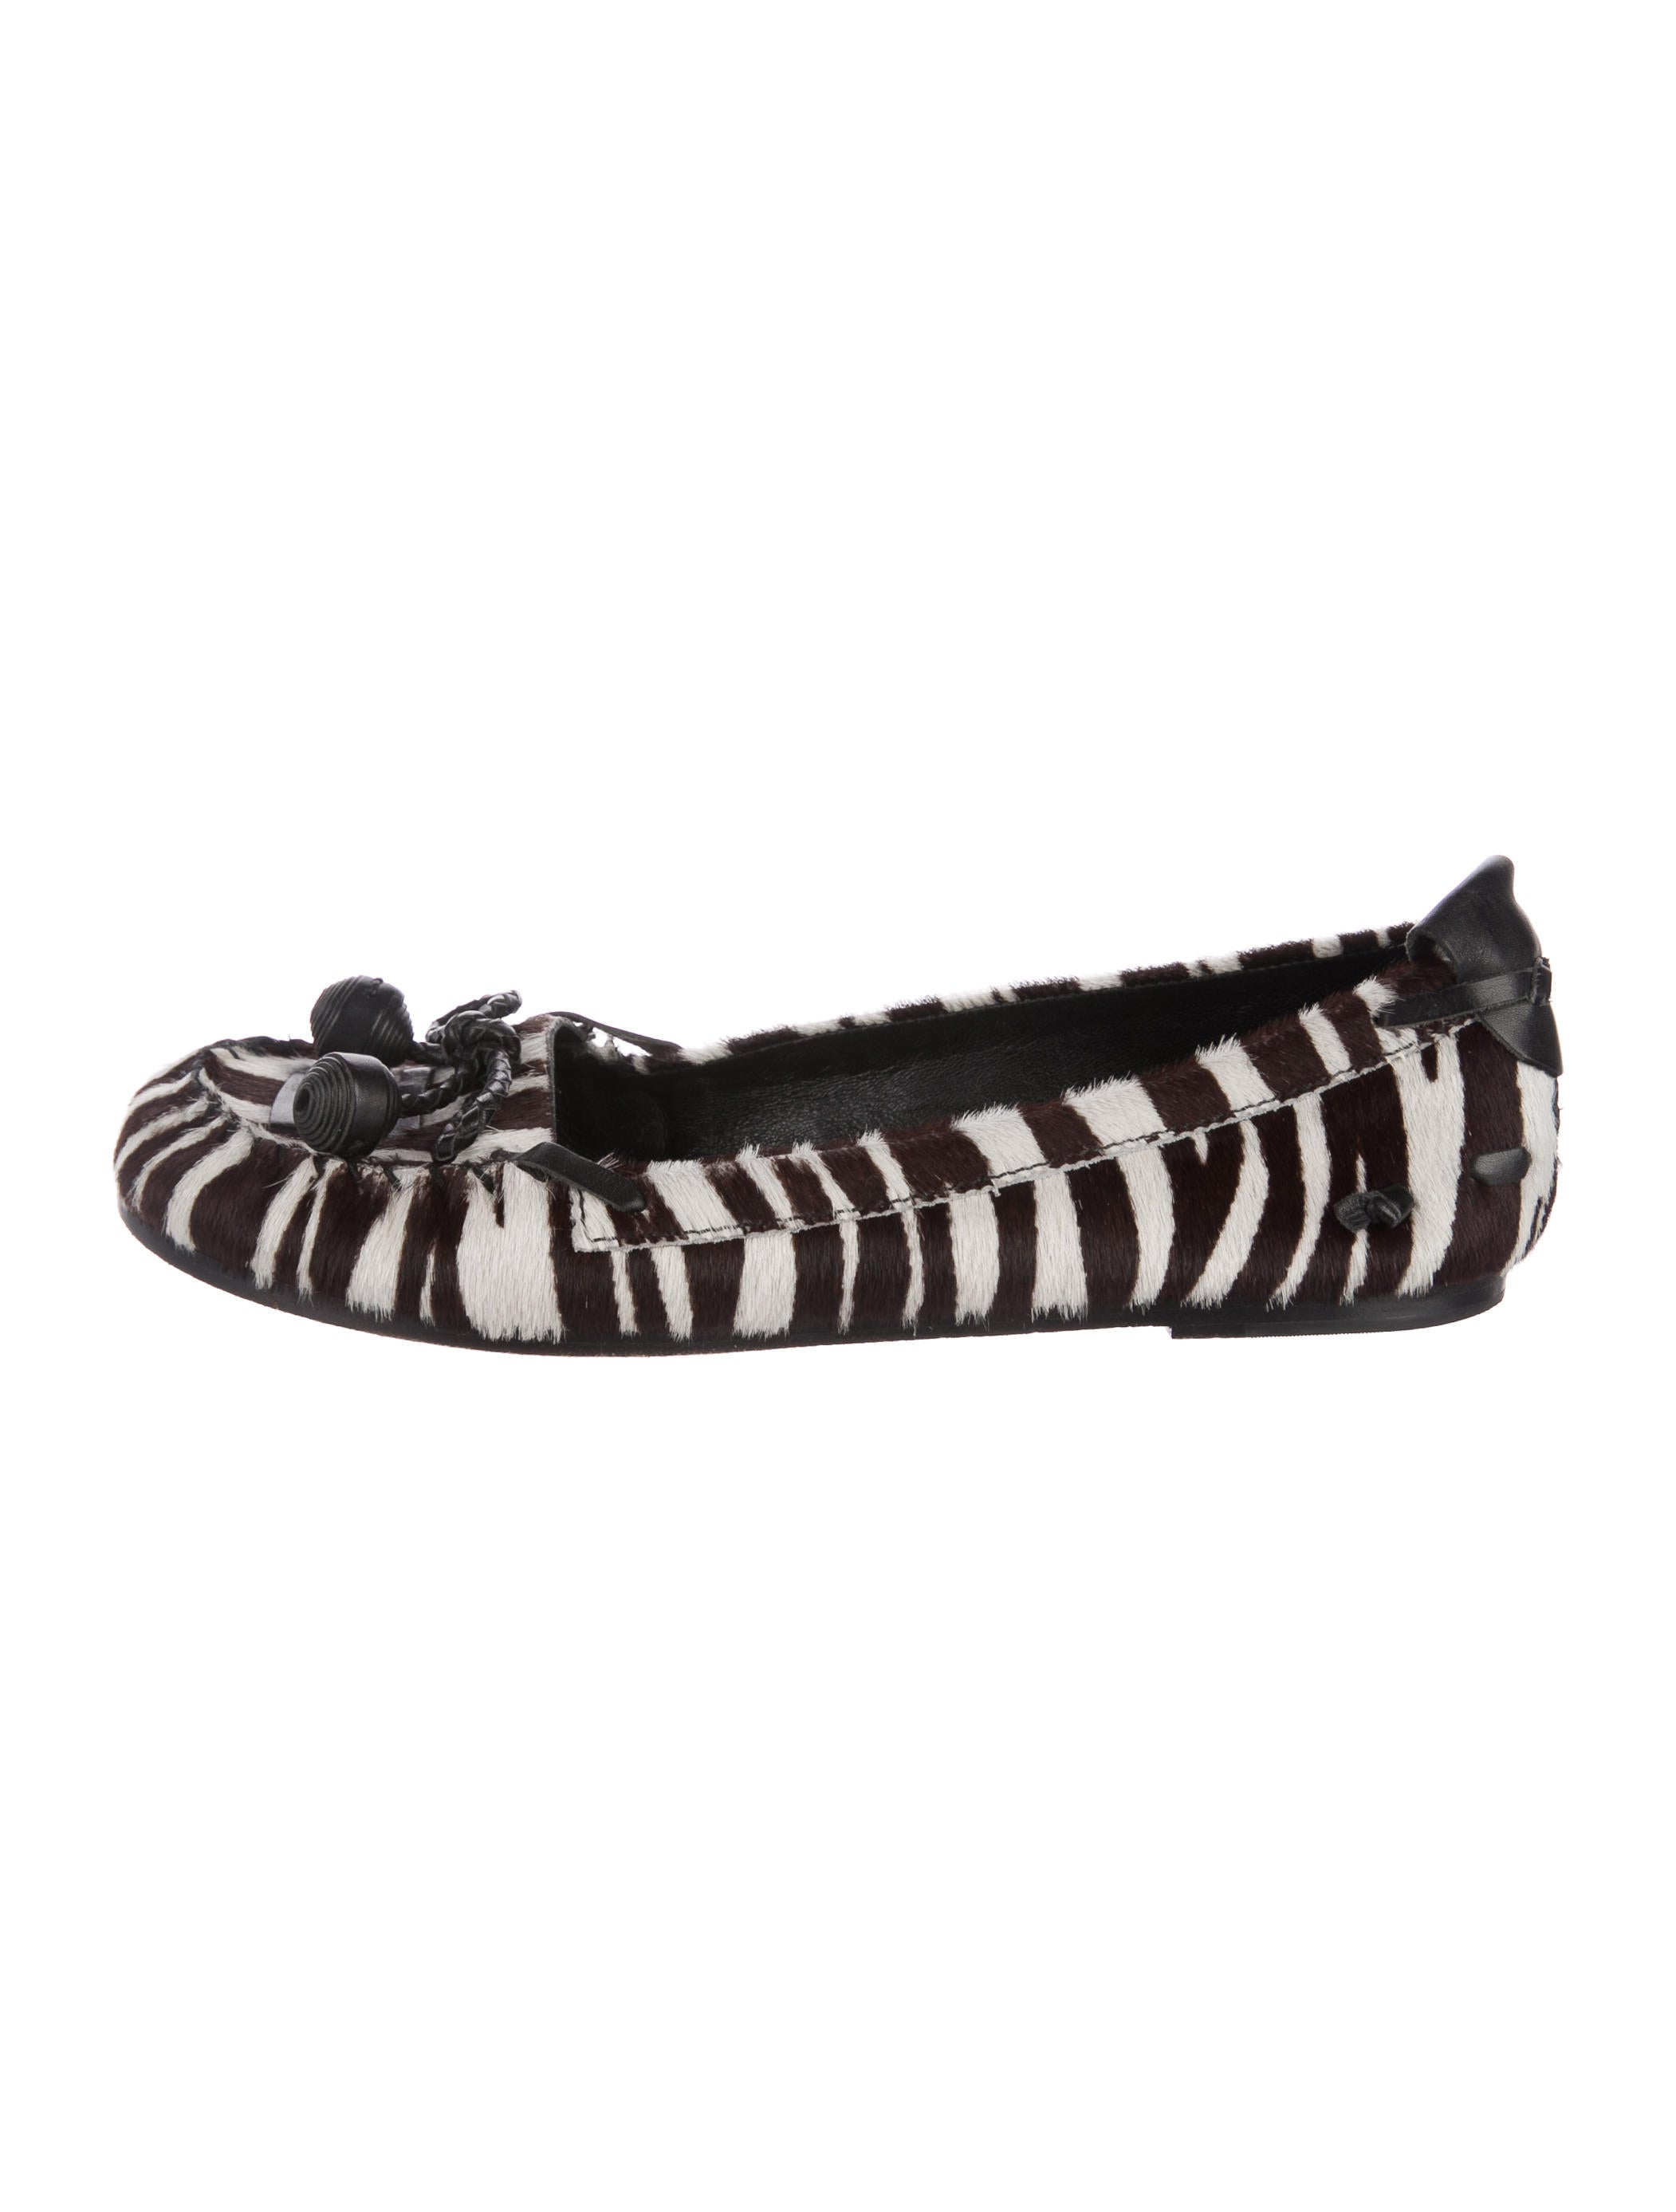 BCBG Max Azria Ponyhair Round-Toe Flats free shipping for nice find great cheap online supply cheap online sale sast ci2Ko